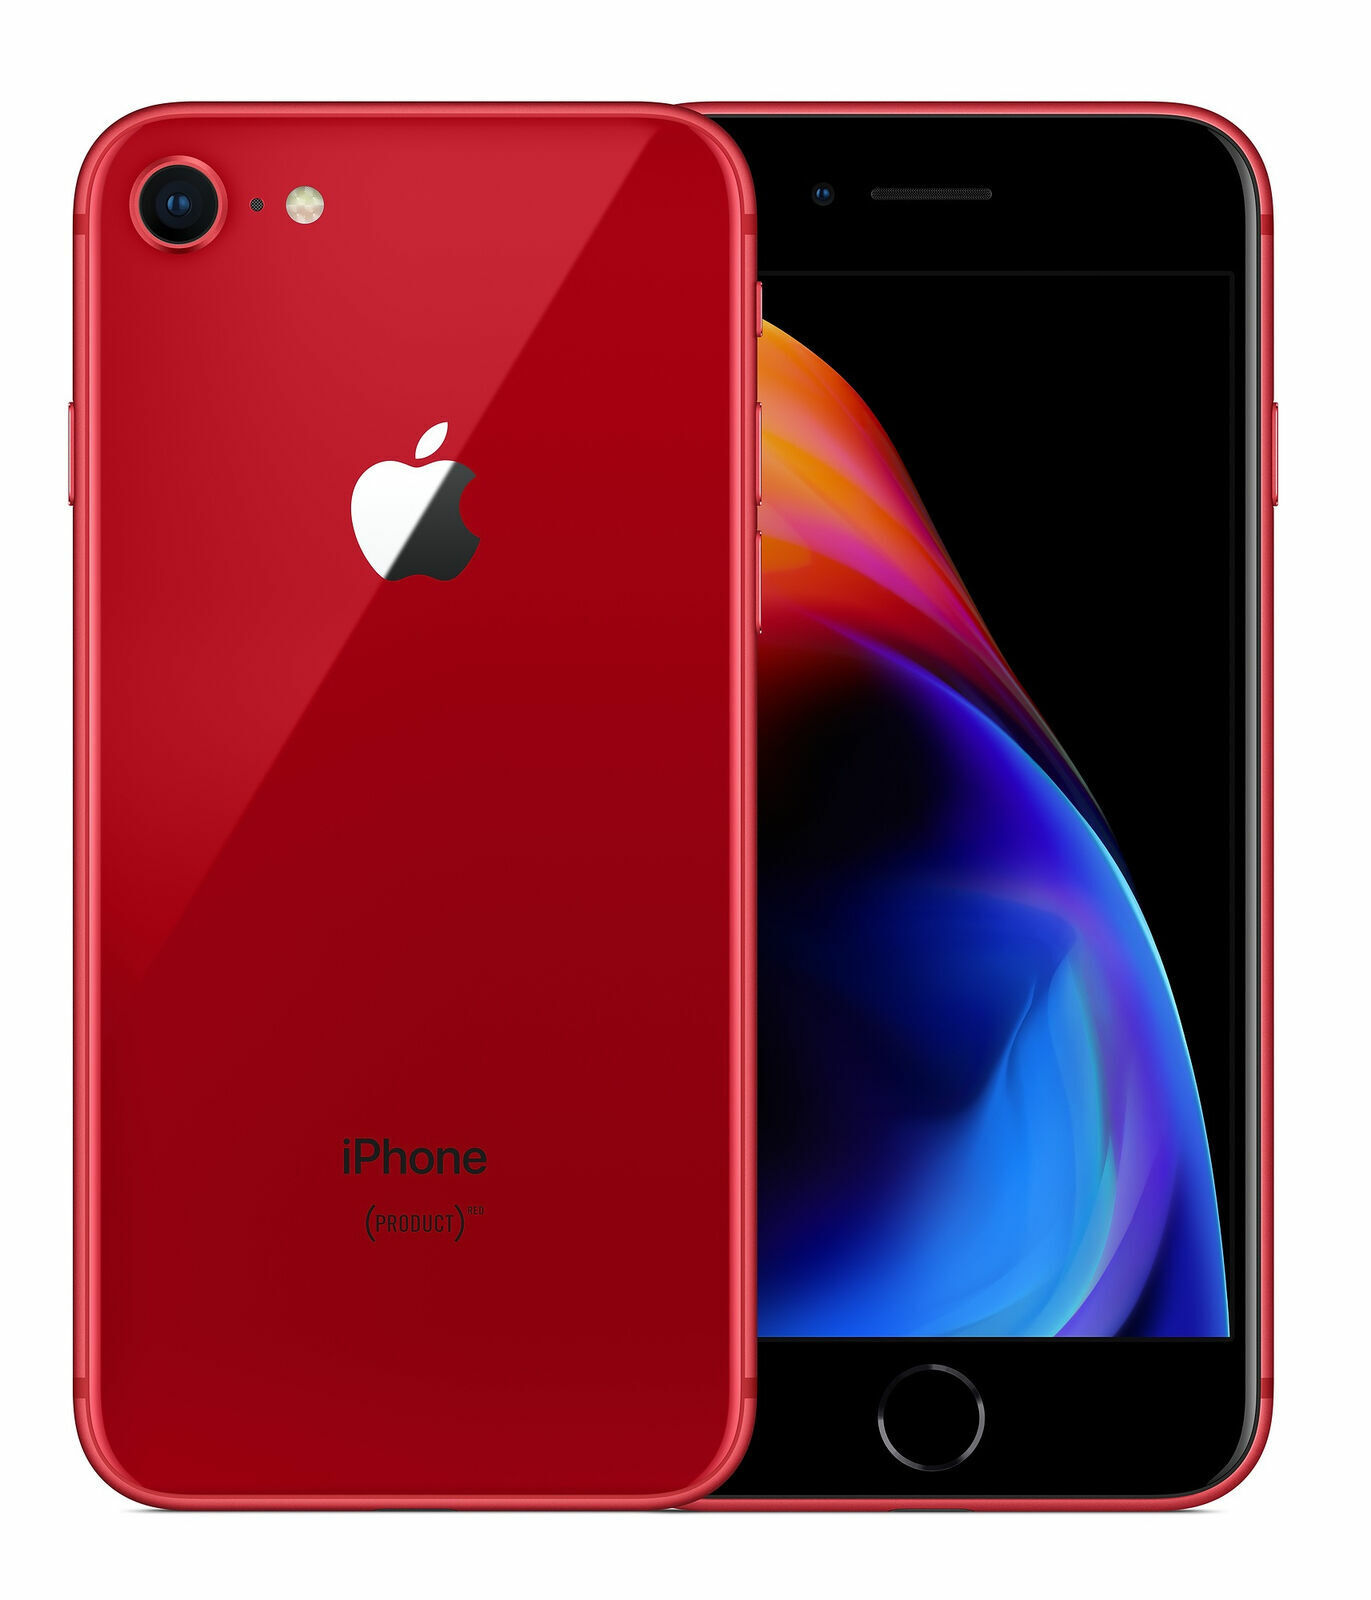 Apple iPhone 8 (PRODUCT)RED - 256GB - (Unlocked) A1863 (CDMA + GSM)